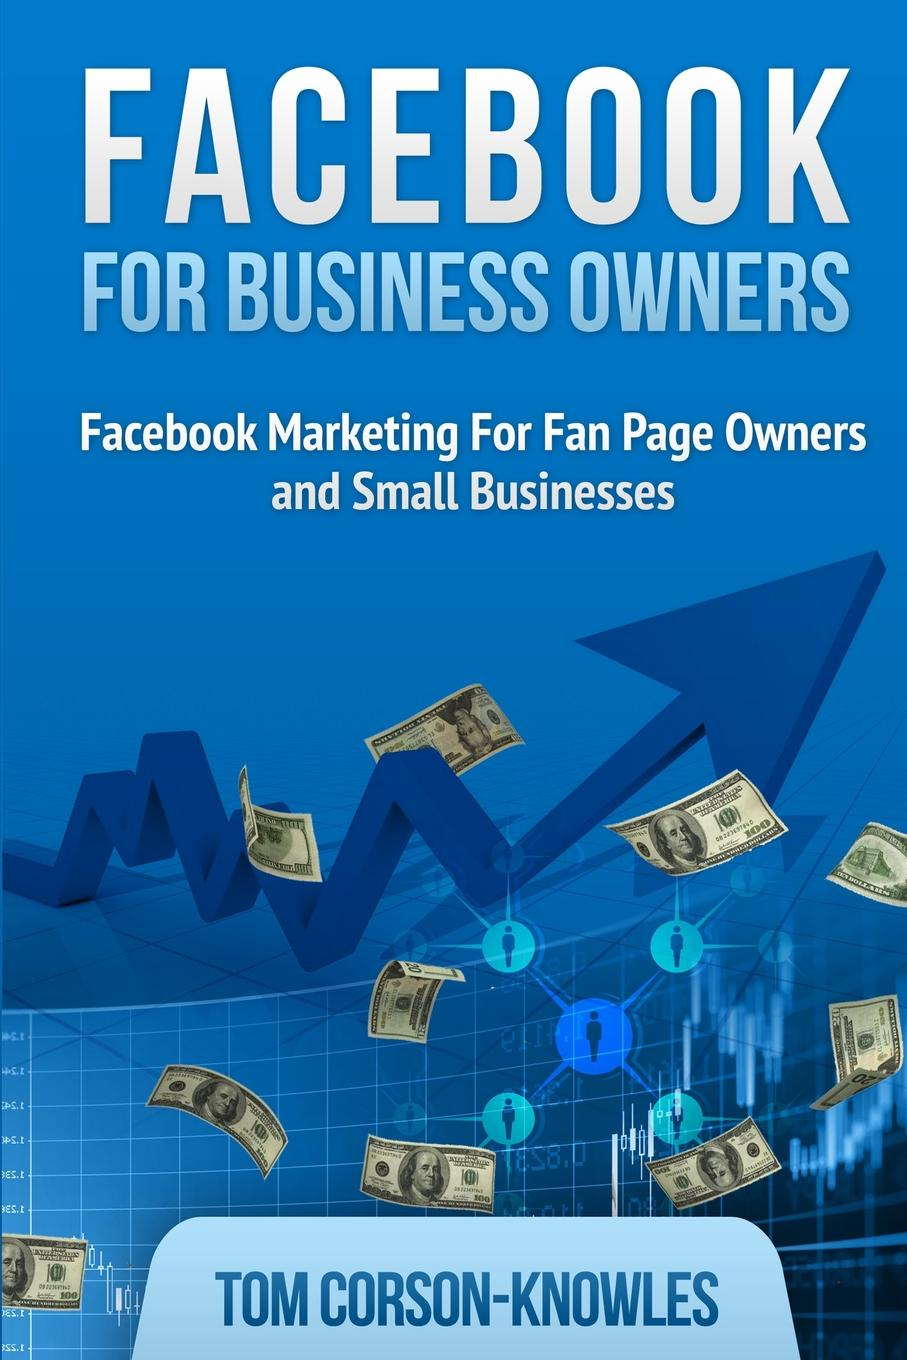 Tom Corson-Knowles Facebook for Business Owners. Facebook Marketing For Fan Page Owners and Small Businesses ramon ray the facebook guide to small business marketing